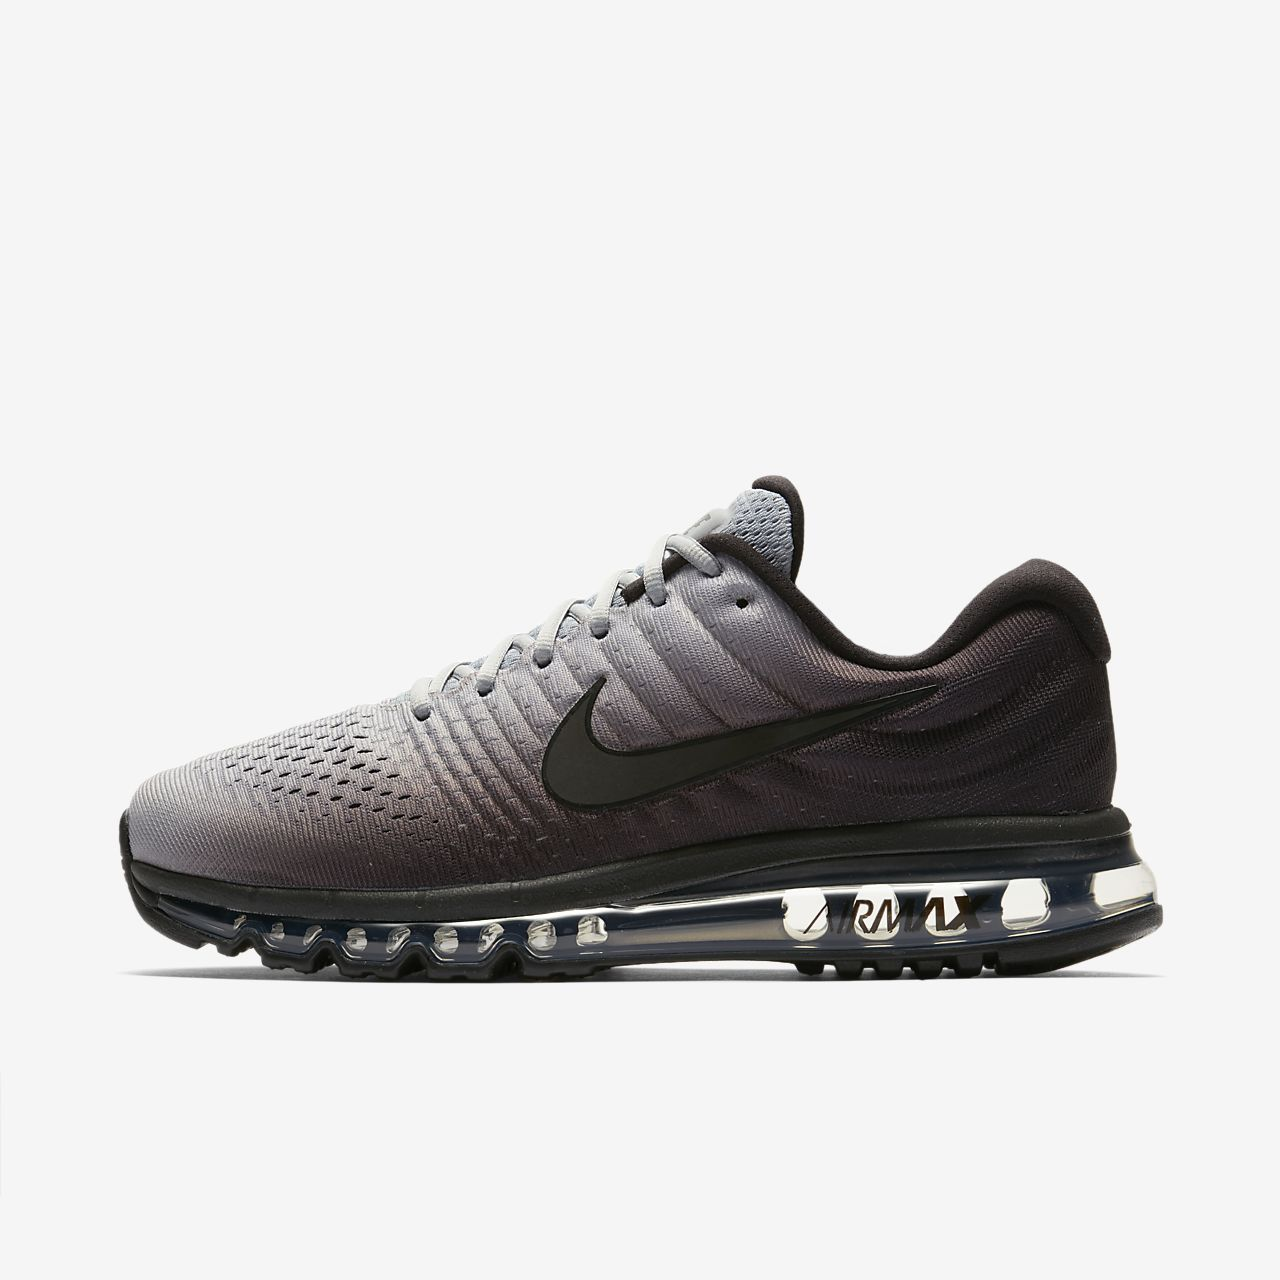 separation shoes 456ca 10043 ... Nike Air Max 2017 Herren-Laufschuh